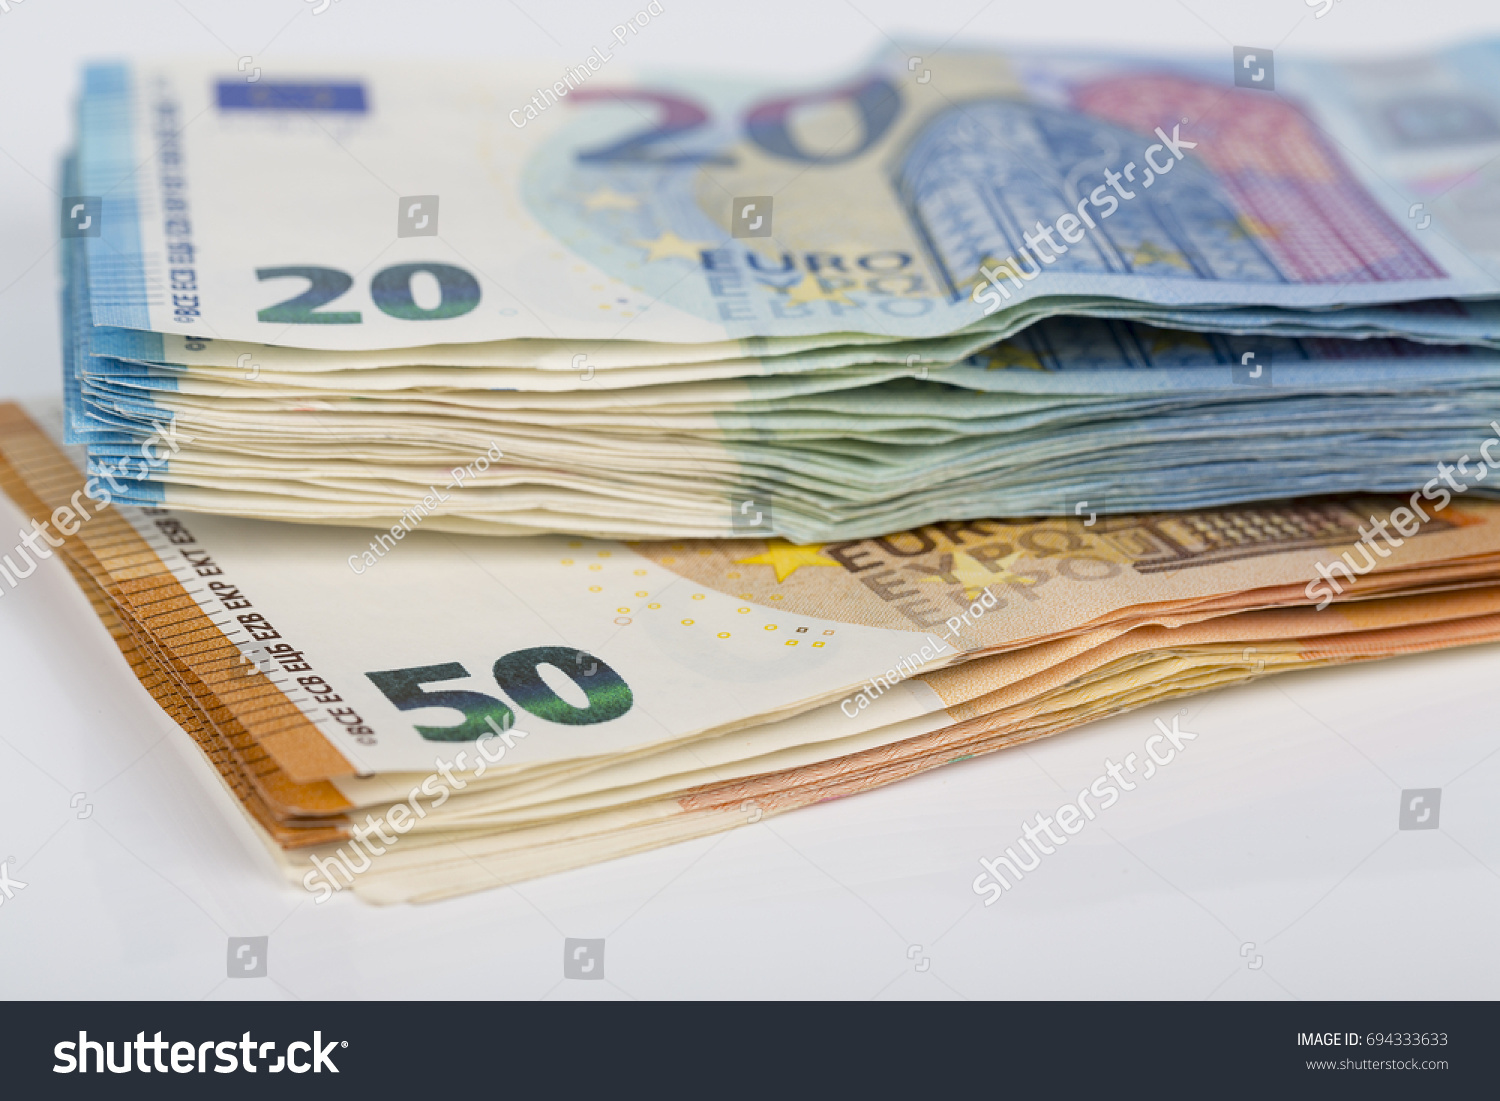 Pills bills paper 20 50 euro stock photo 694333633 shutterstock pills of bills paper 20 and 50 euro banknotes on white background symbol of biocorpaavc Images